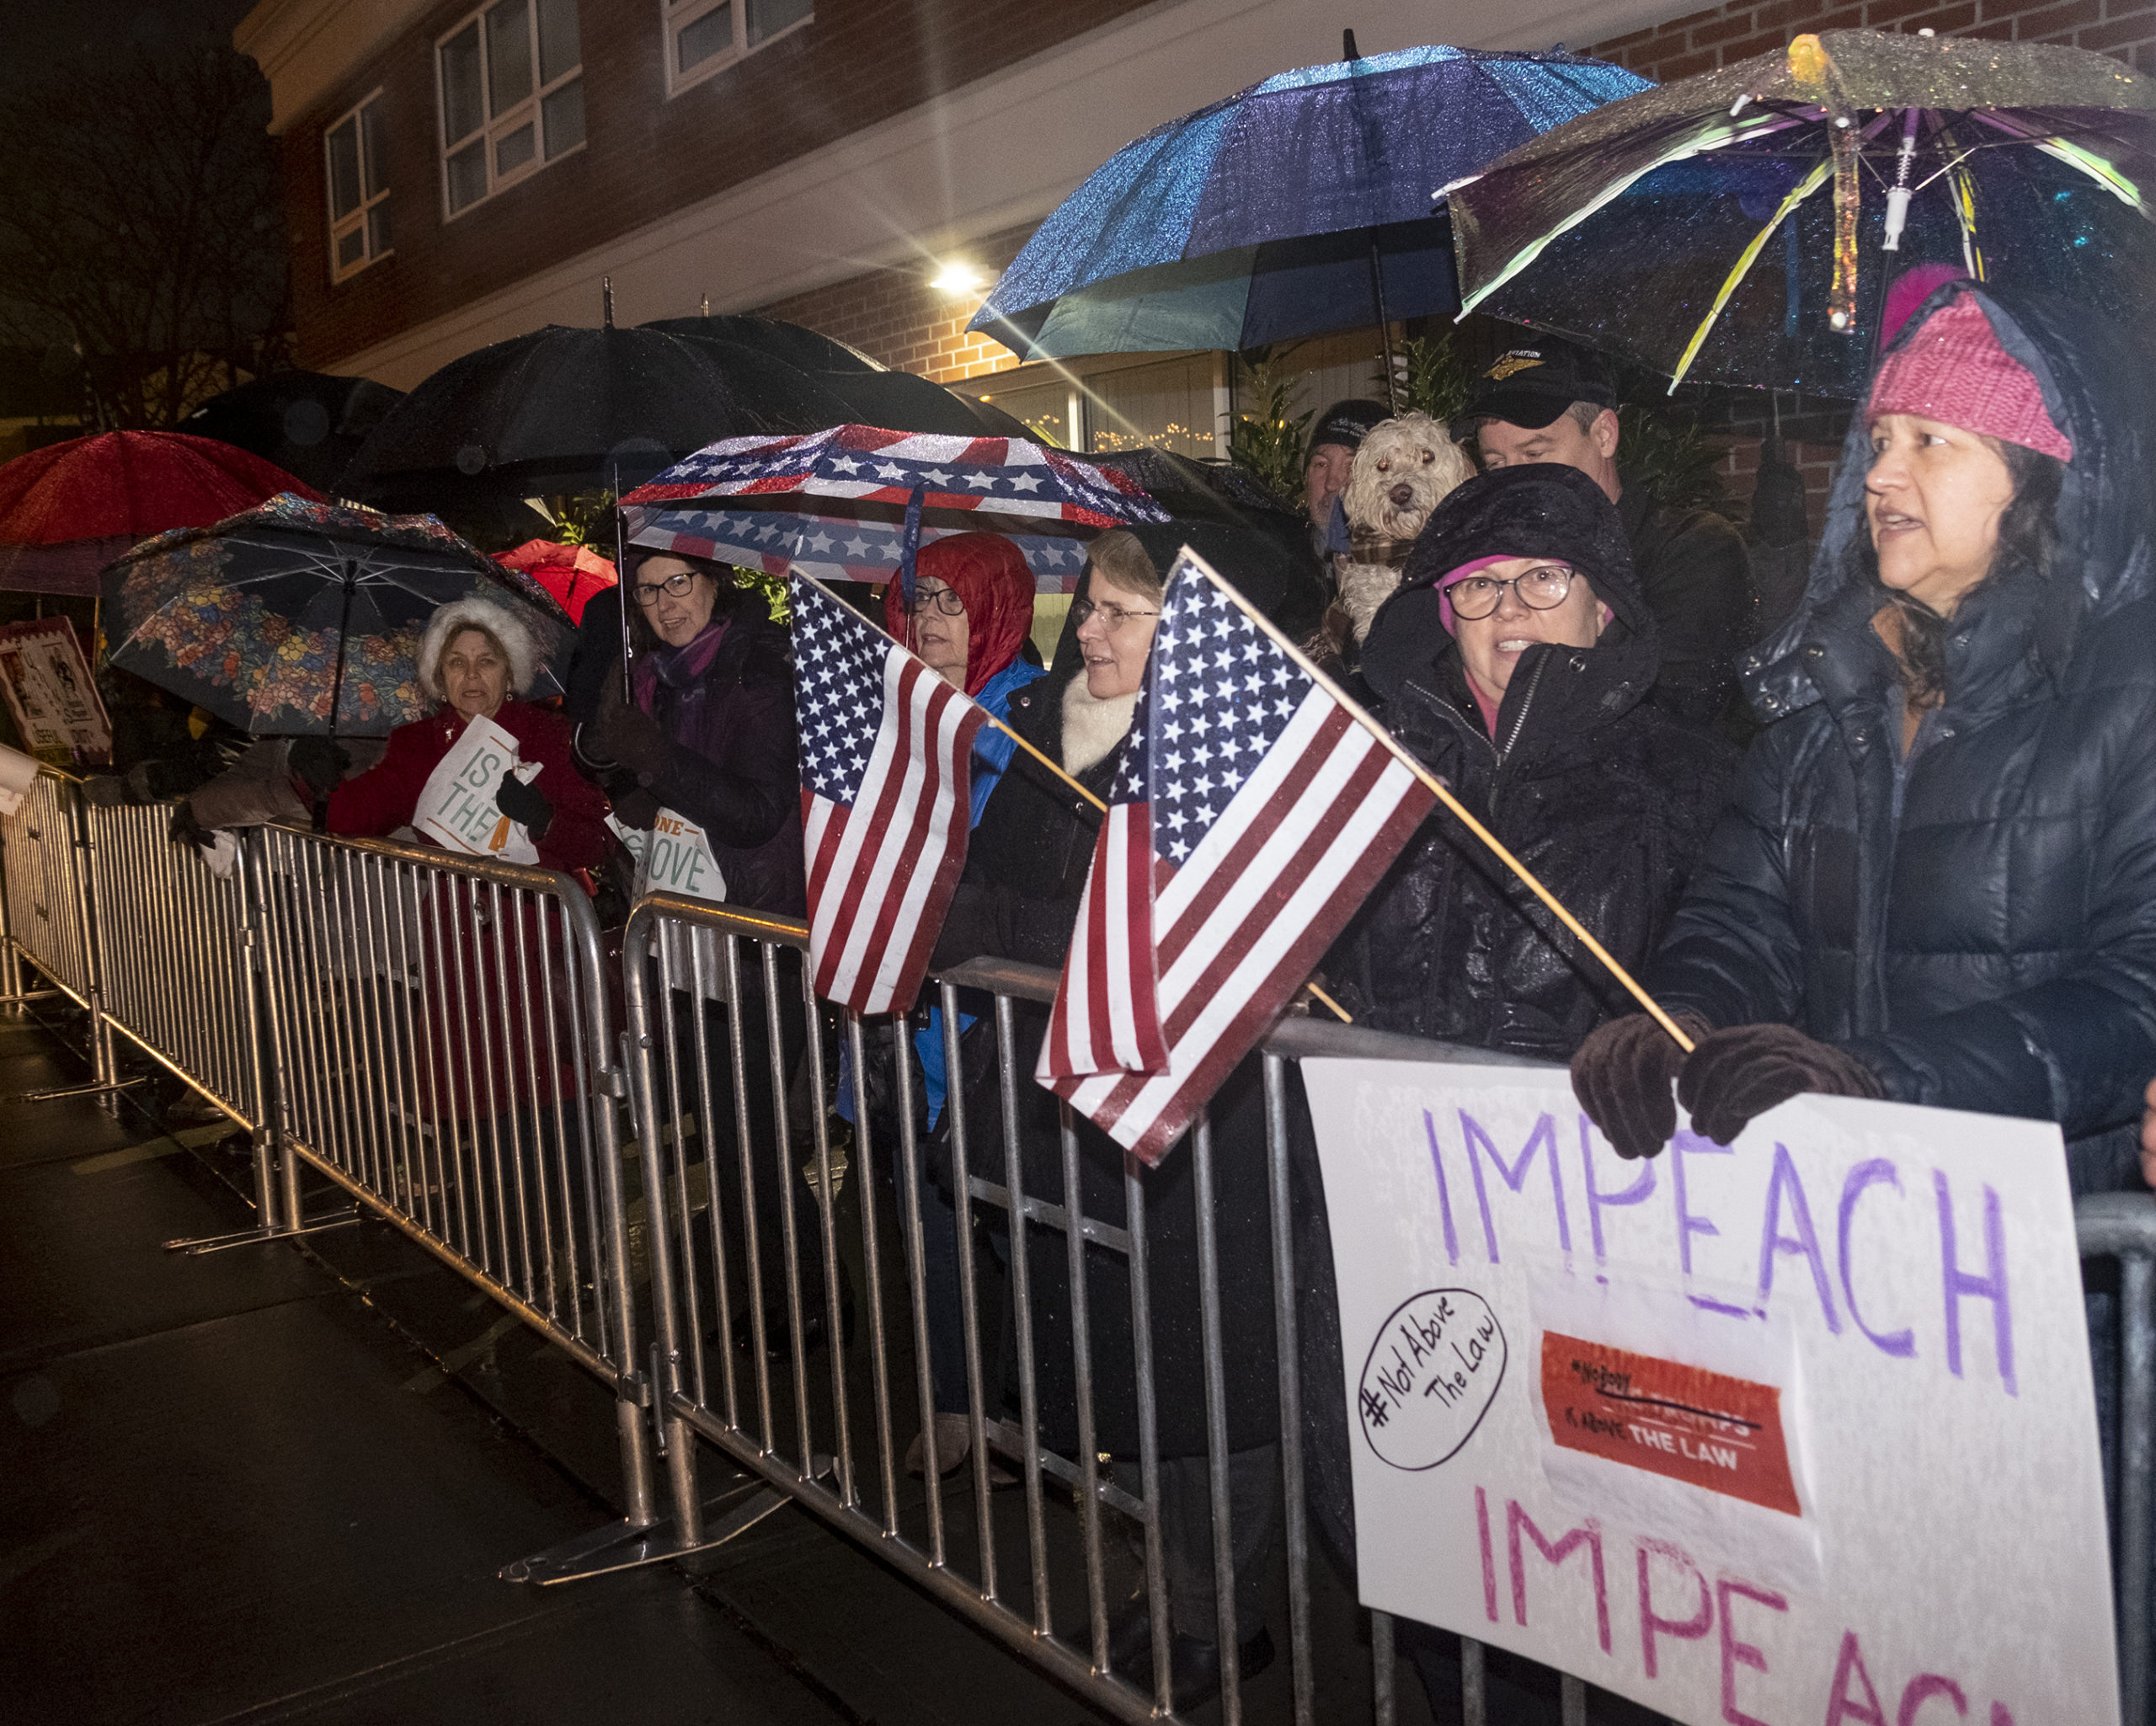 Protesters gathered outside U.S. Representative Lee Zeldin's offices earlier this week to demand he vote in favor of impeachment.